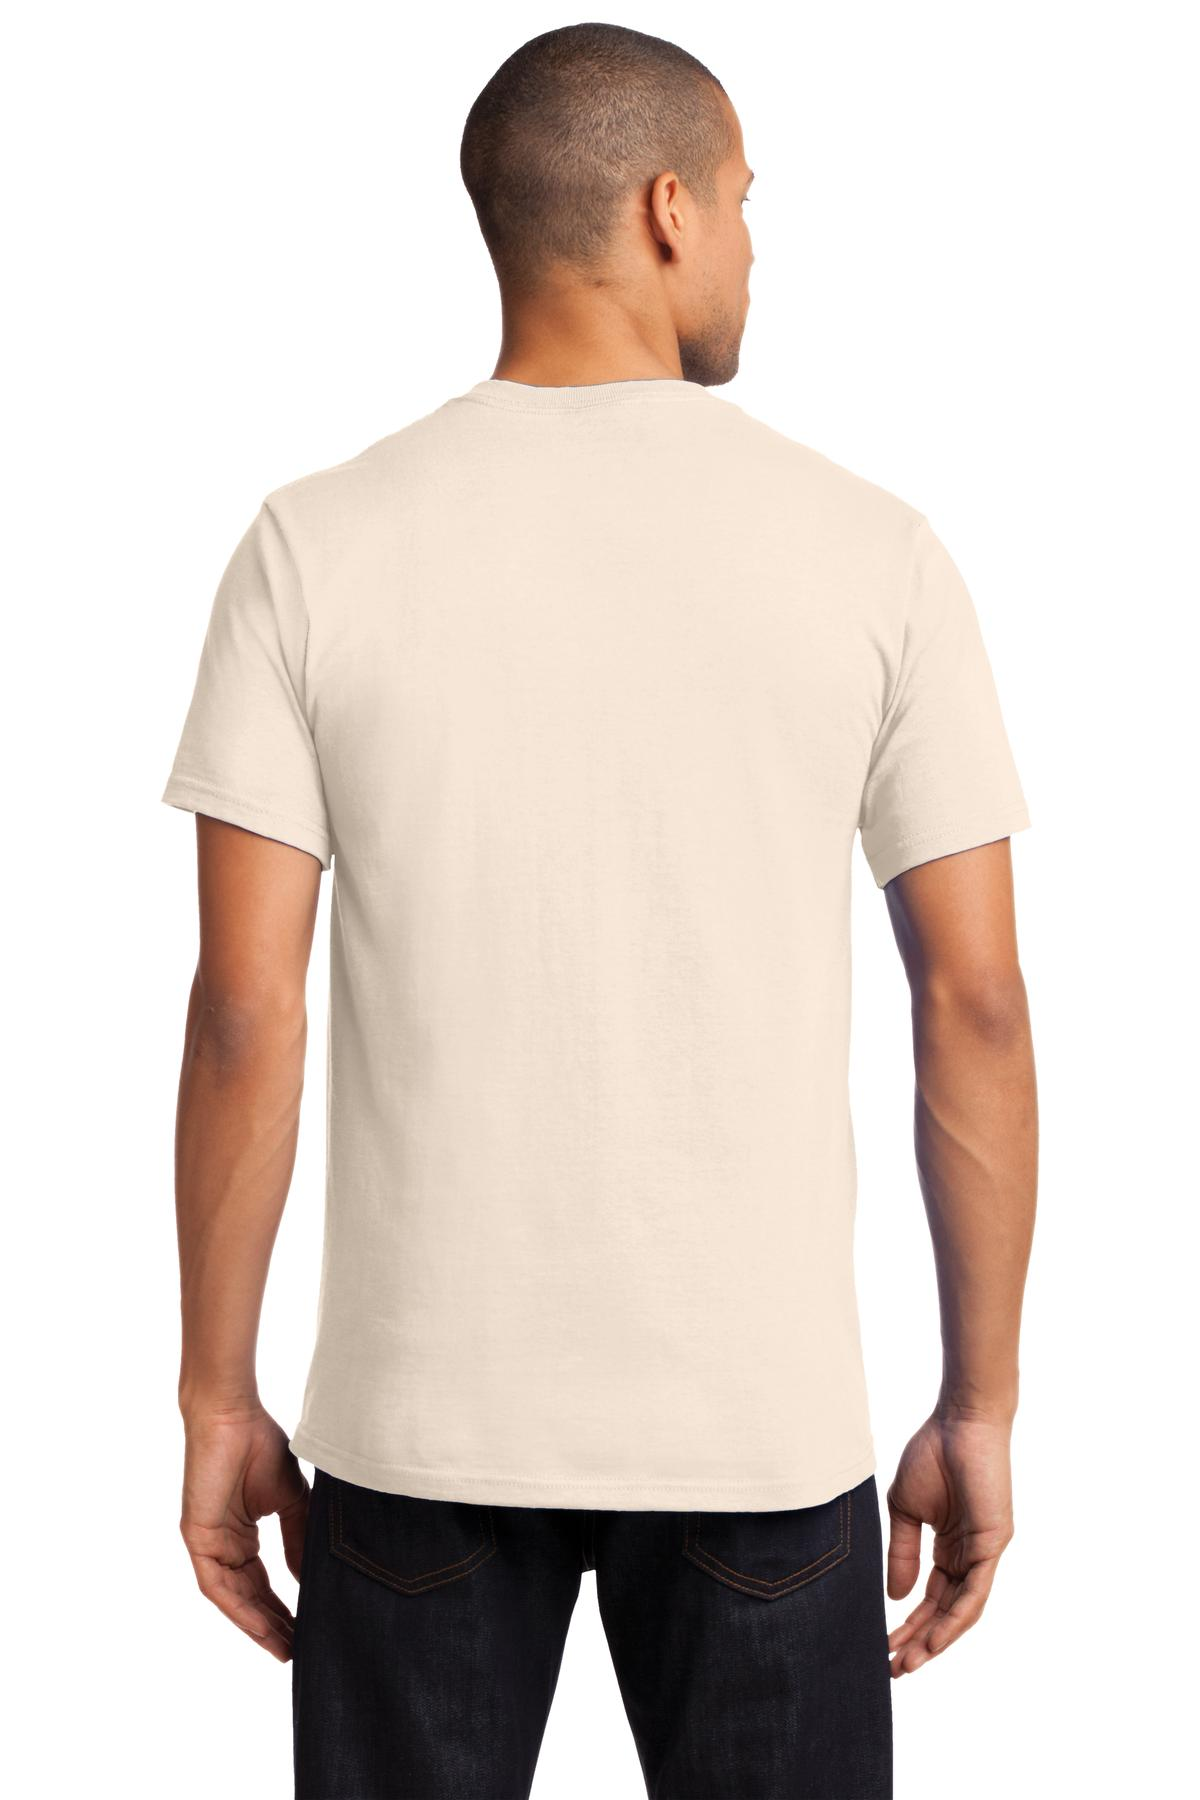 Port-amp-Company-Tall-Essential-TShirt-with-Pocket-PC61PT-Size-LT-4XLT thumbnail 24